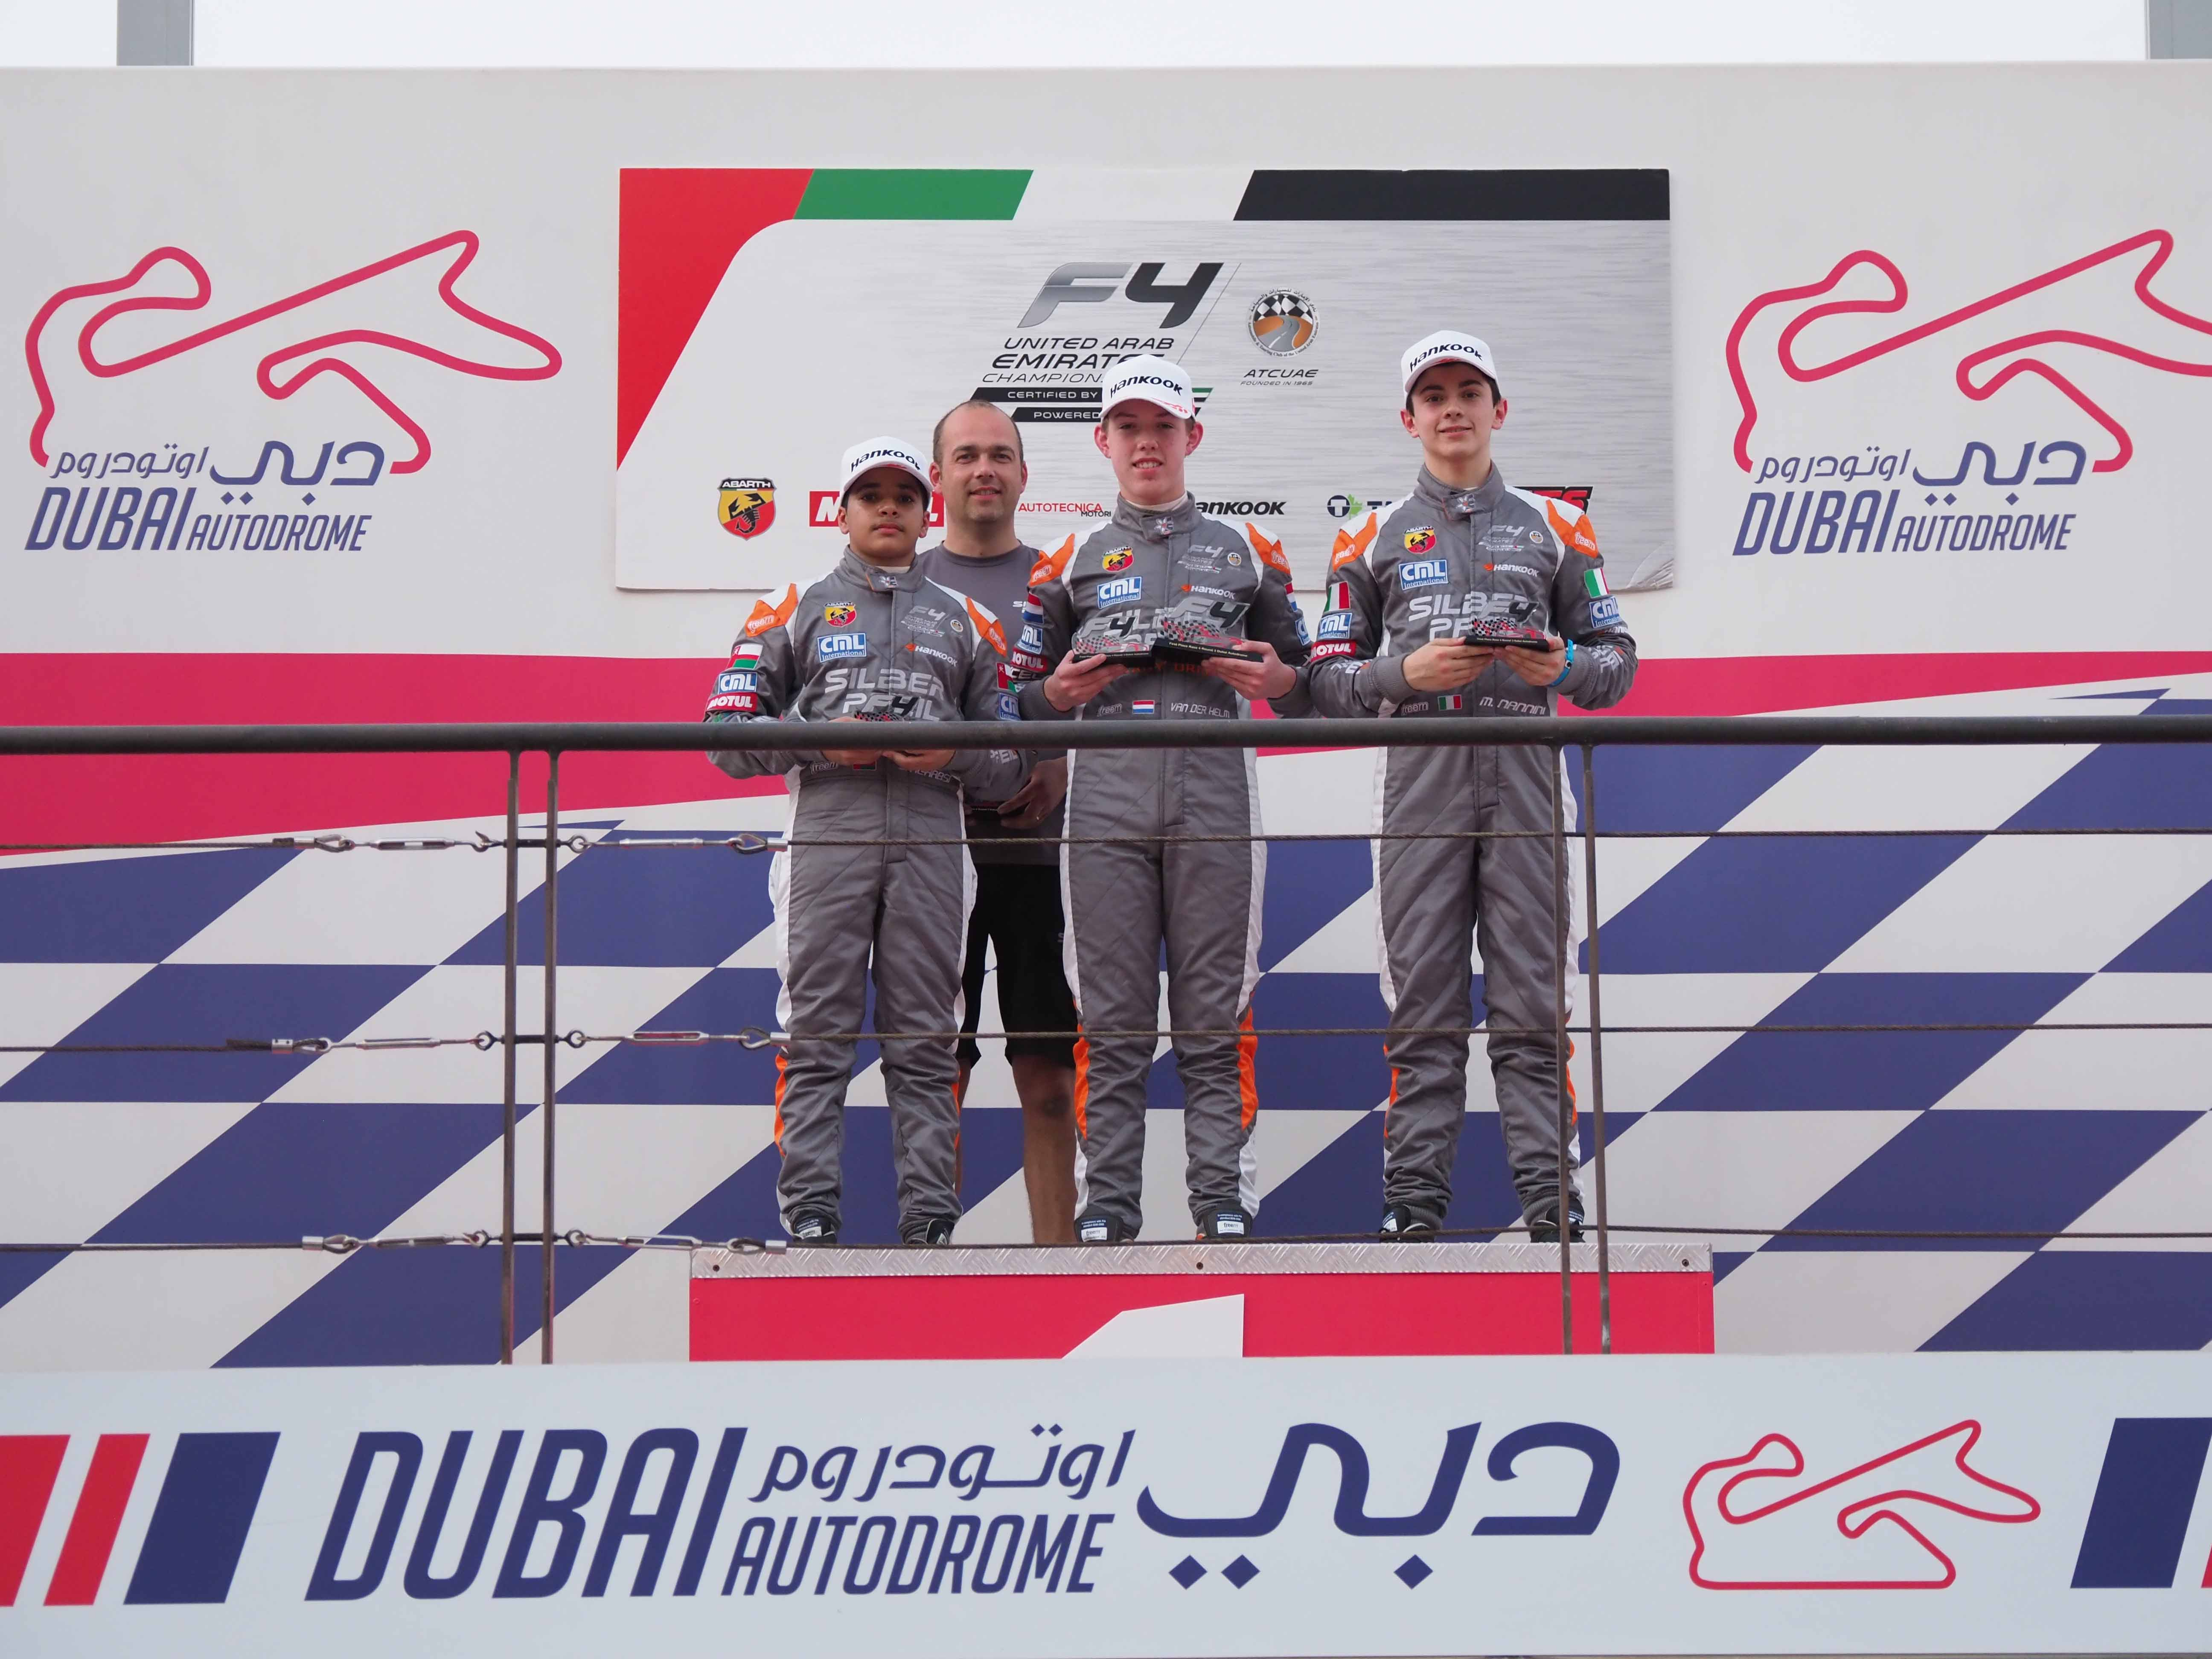 NEW FIRST-TIME F4UAE WINNER EMERGES IN DUBAI AS CHAMPIONSHIP FIGHT STRENGTHENS